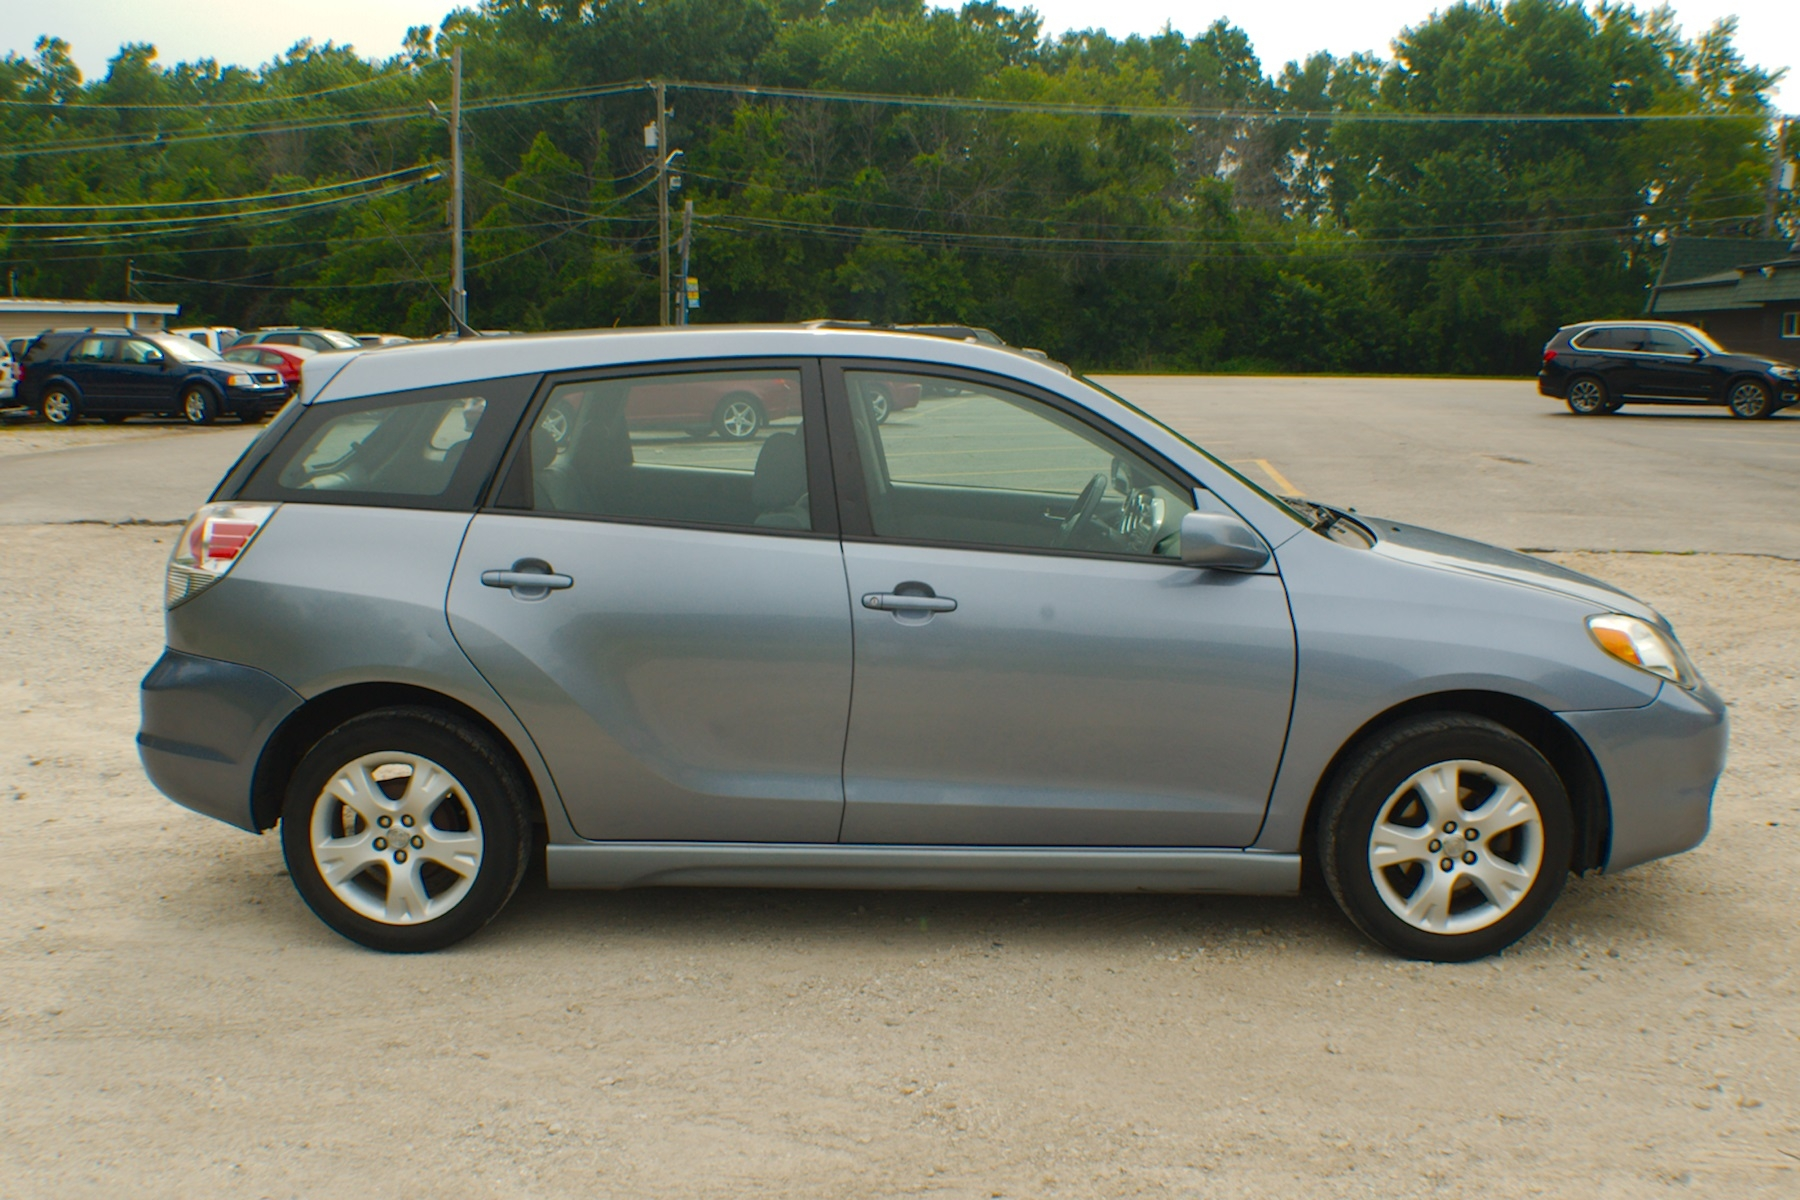 2006 Toyota Matrix Blue Manual Sedan Used Wagon Sale Bannockburn Barrington Beach Park